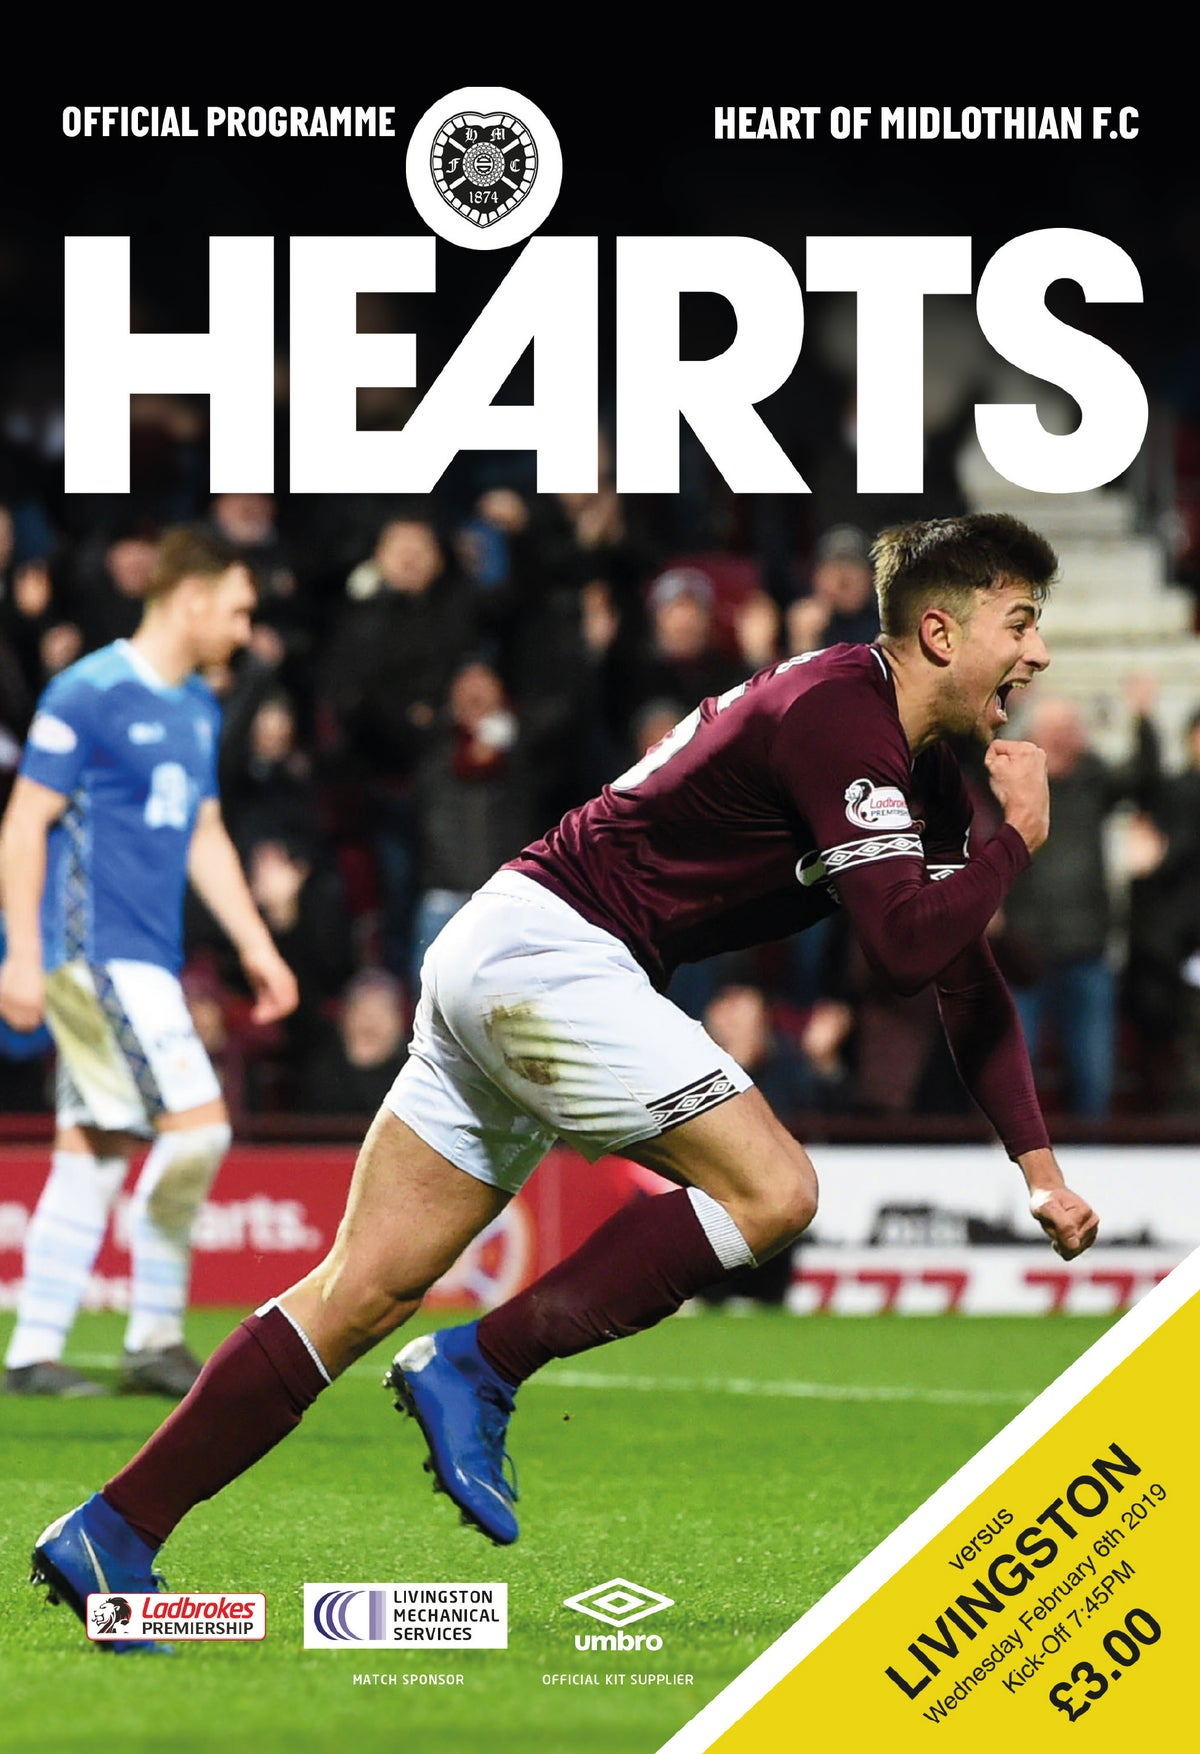 Image of Hearts v Livingstone, 6th February 2019